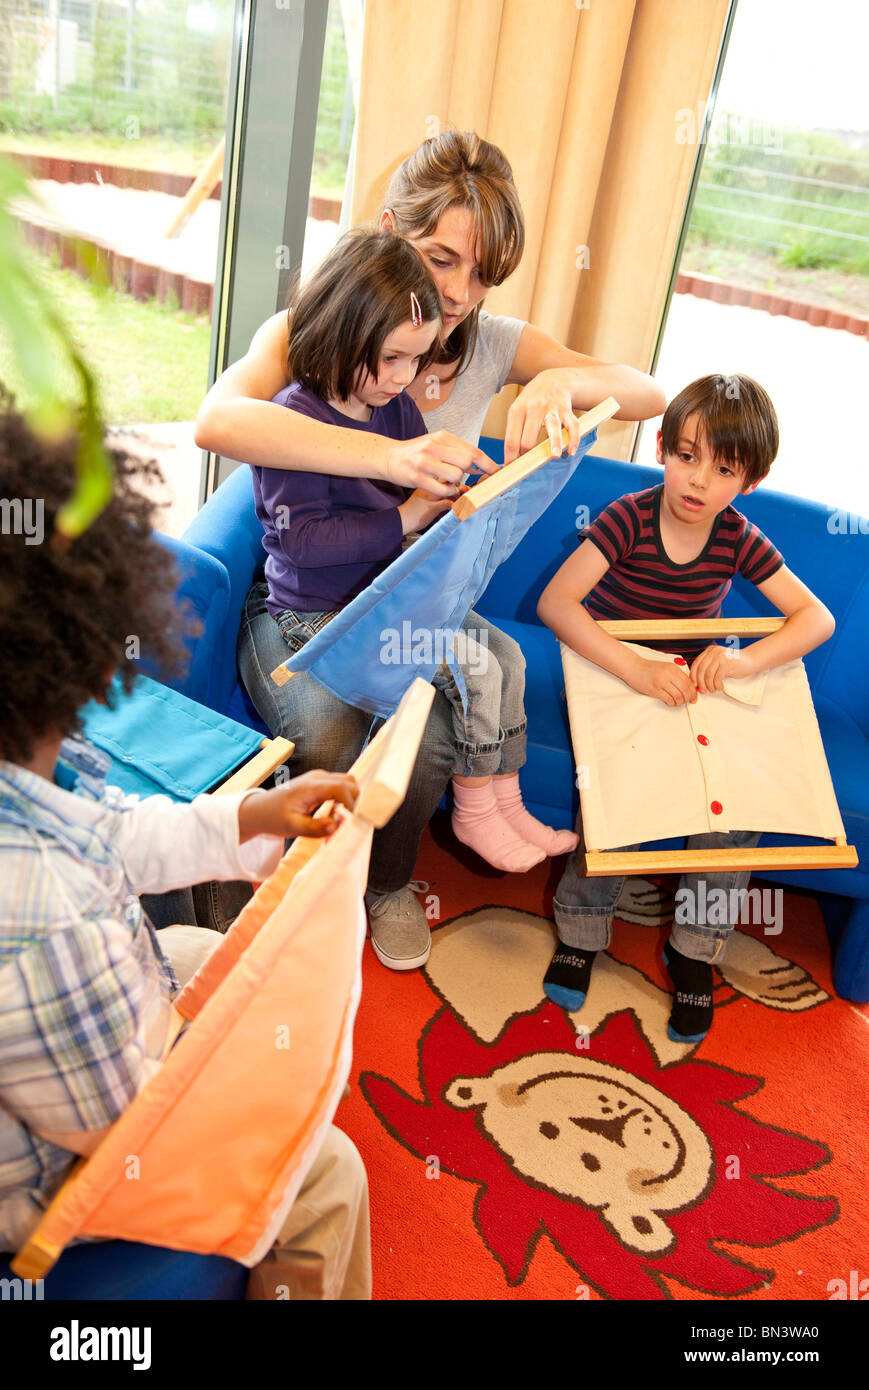 Kindergarten teacher and children playing fasteners frames, elevated view - Stock Image